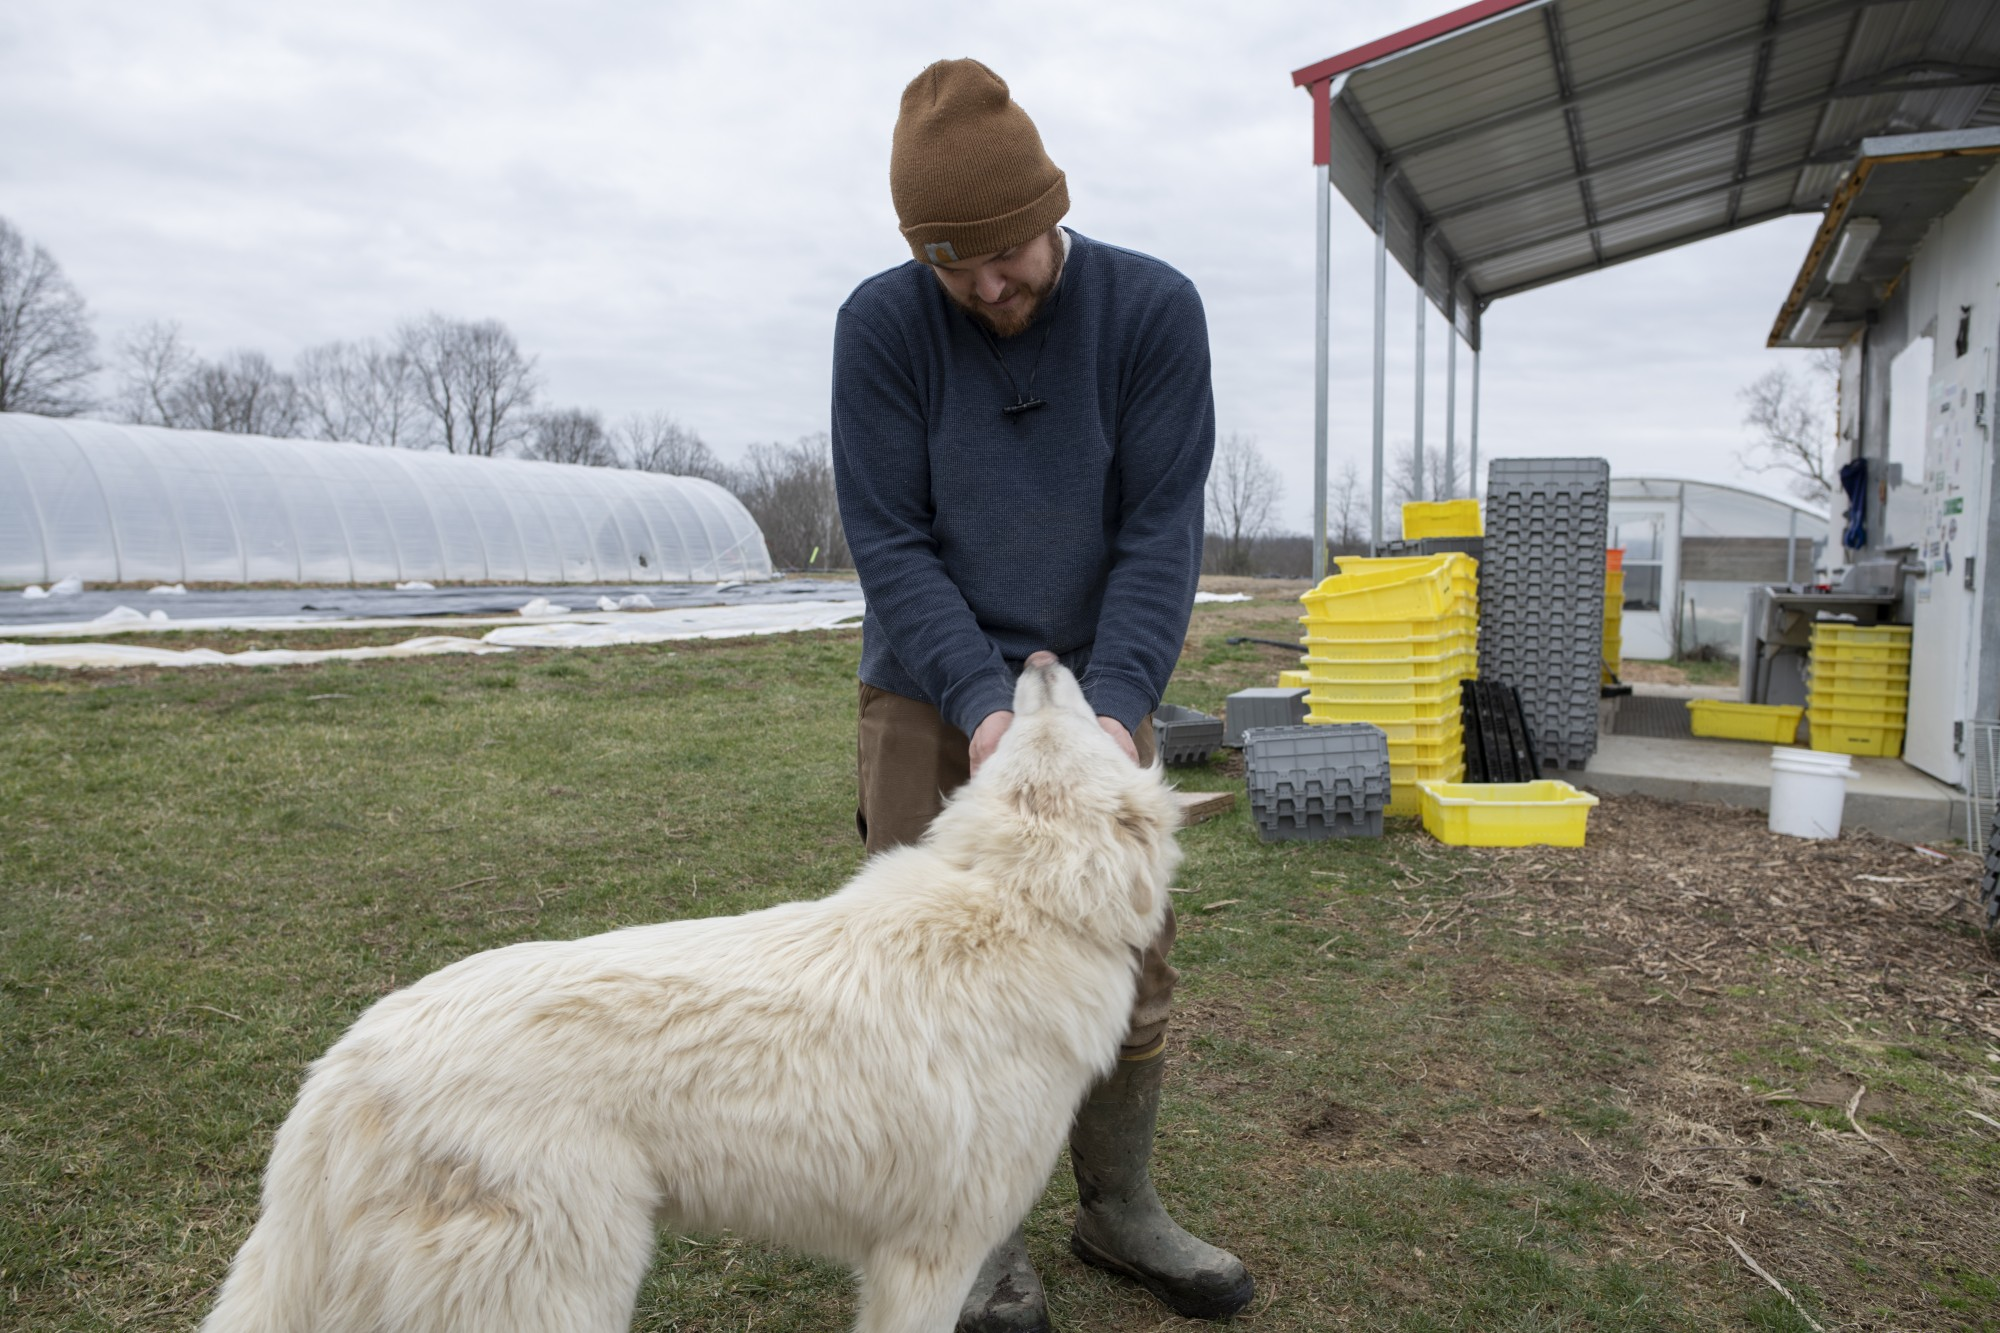 Adam Blaney plays with his dog, on his farm in Albany, Ohio, on March 2, 2020.